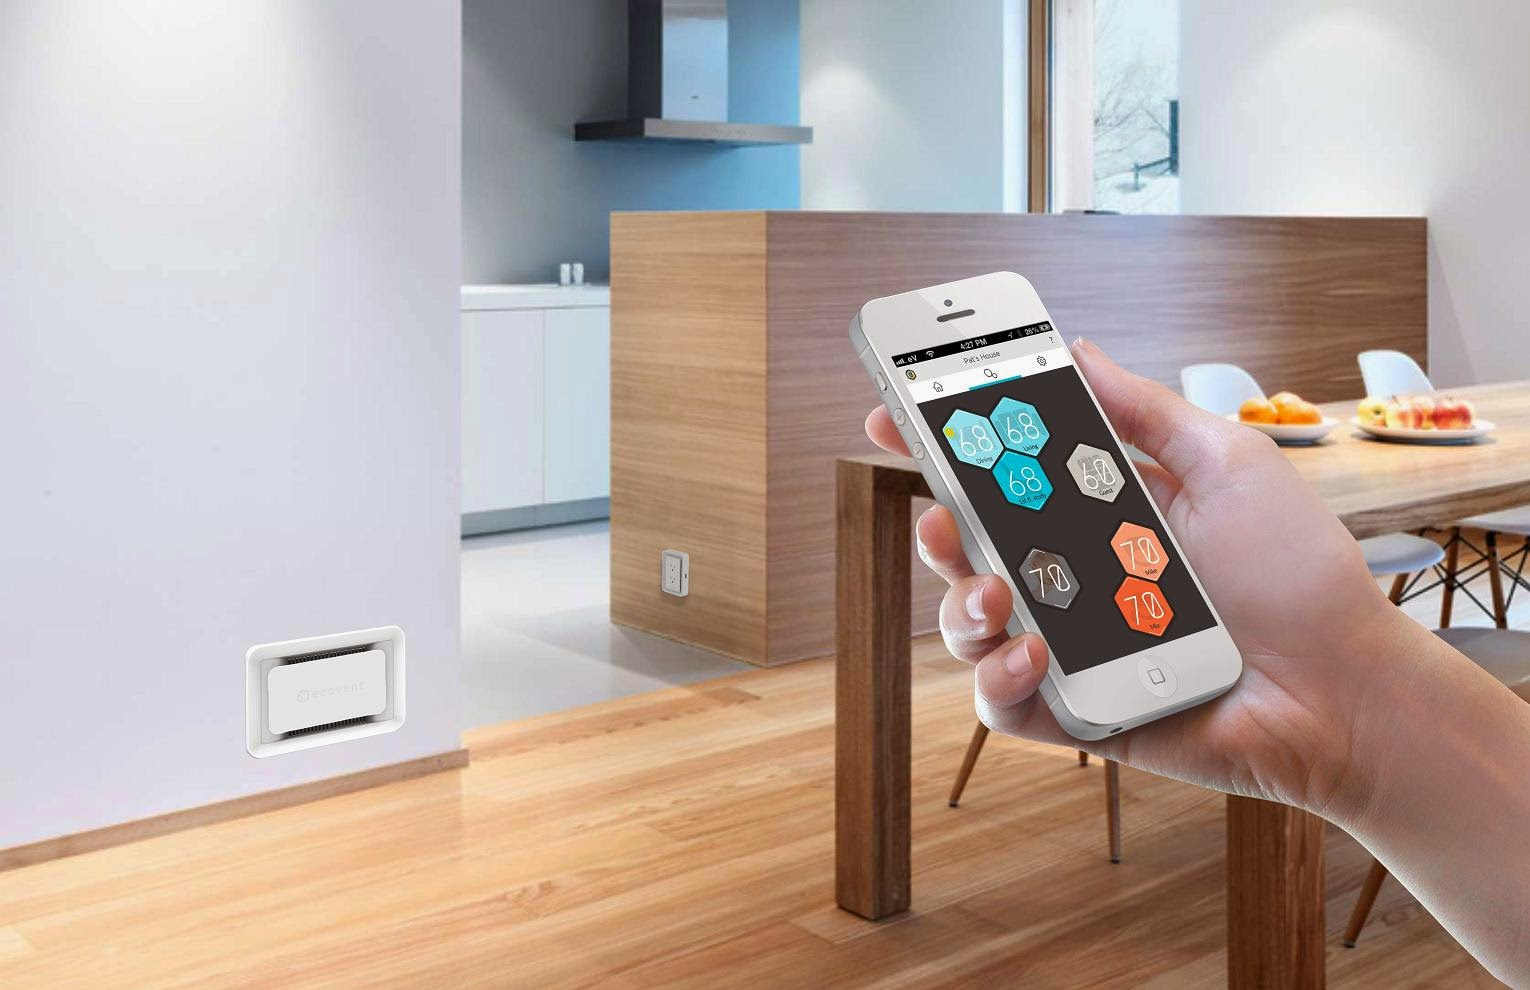 15 Smart Ways To Control Your Home With Your Smartphone.